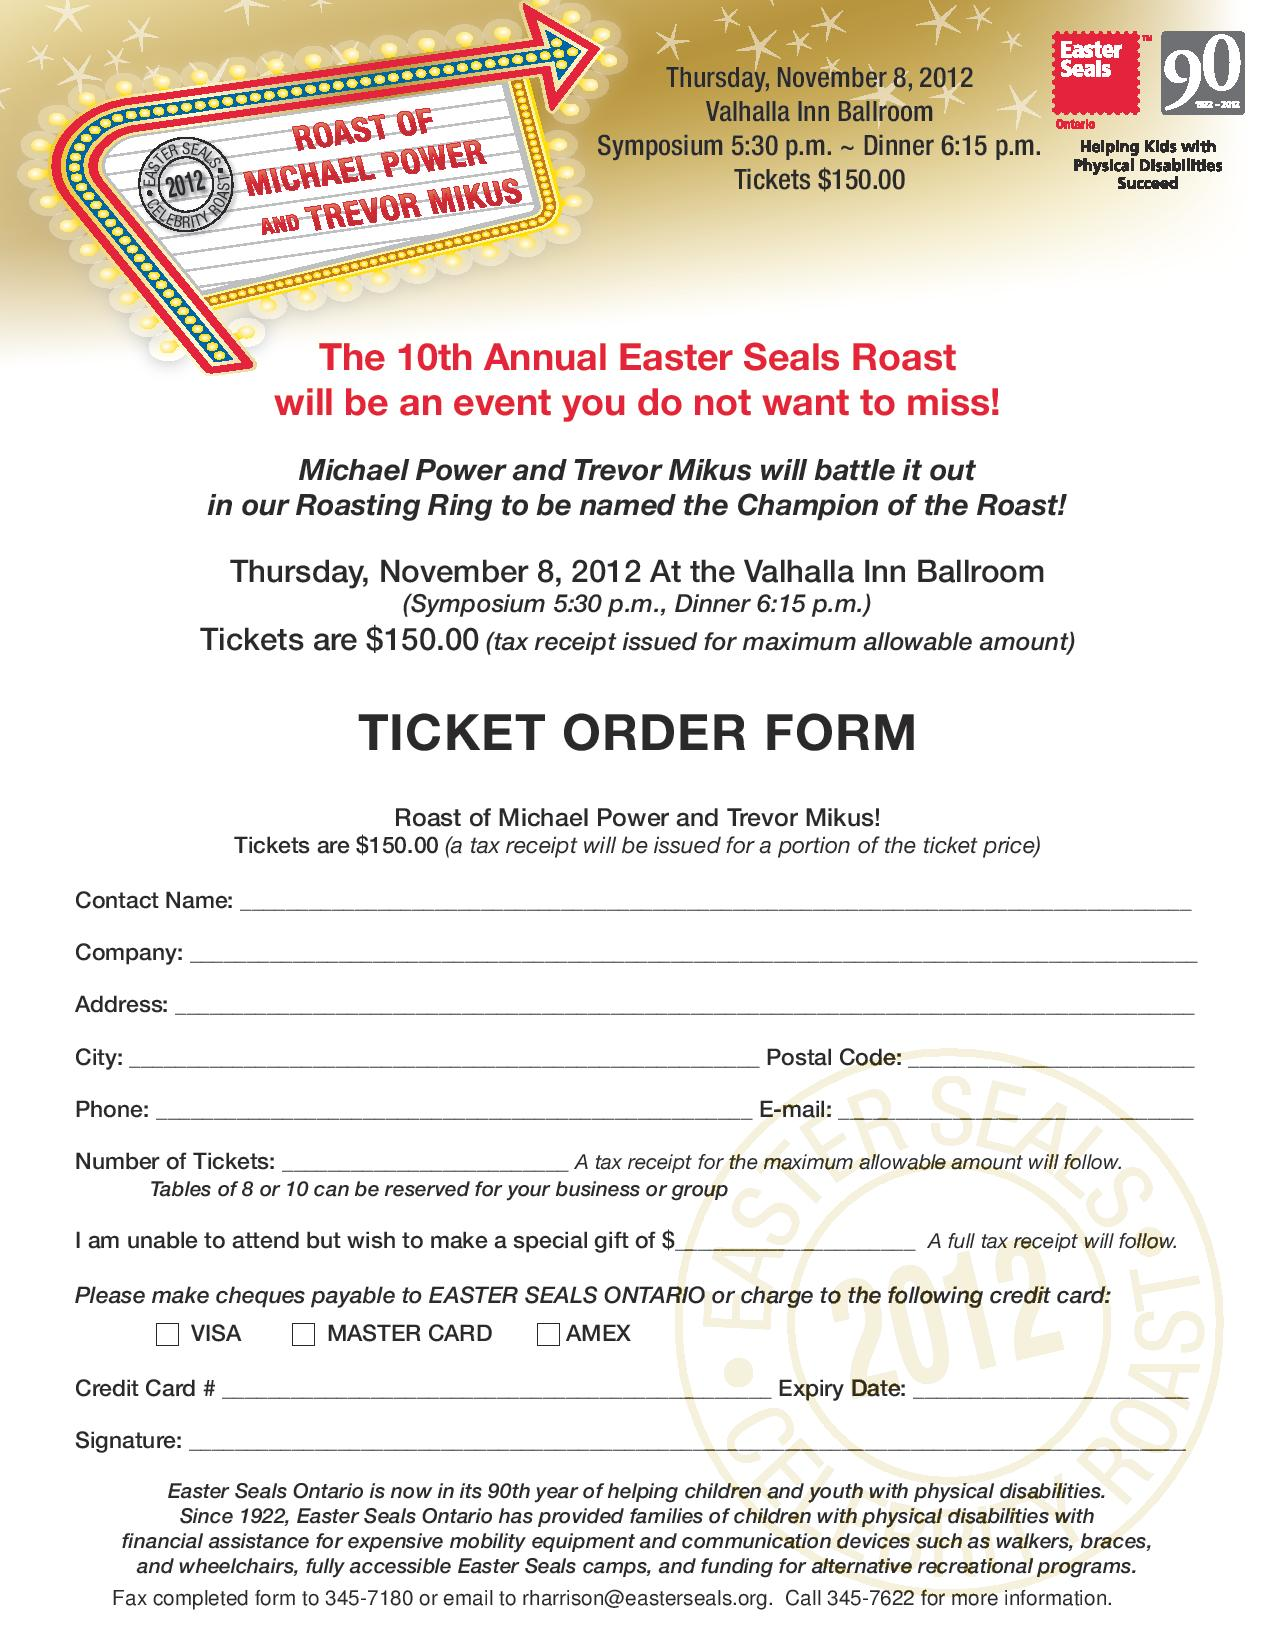 20 sales order templates free sample example format movie ticket – Ticket Order Form Template